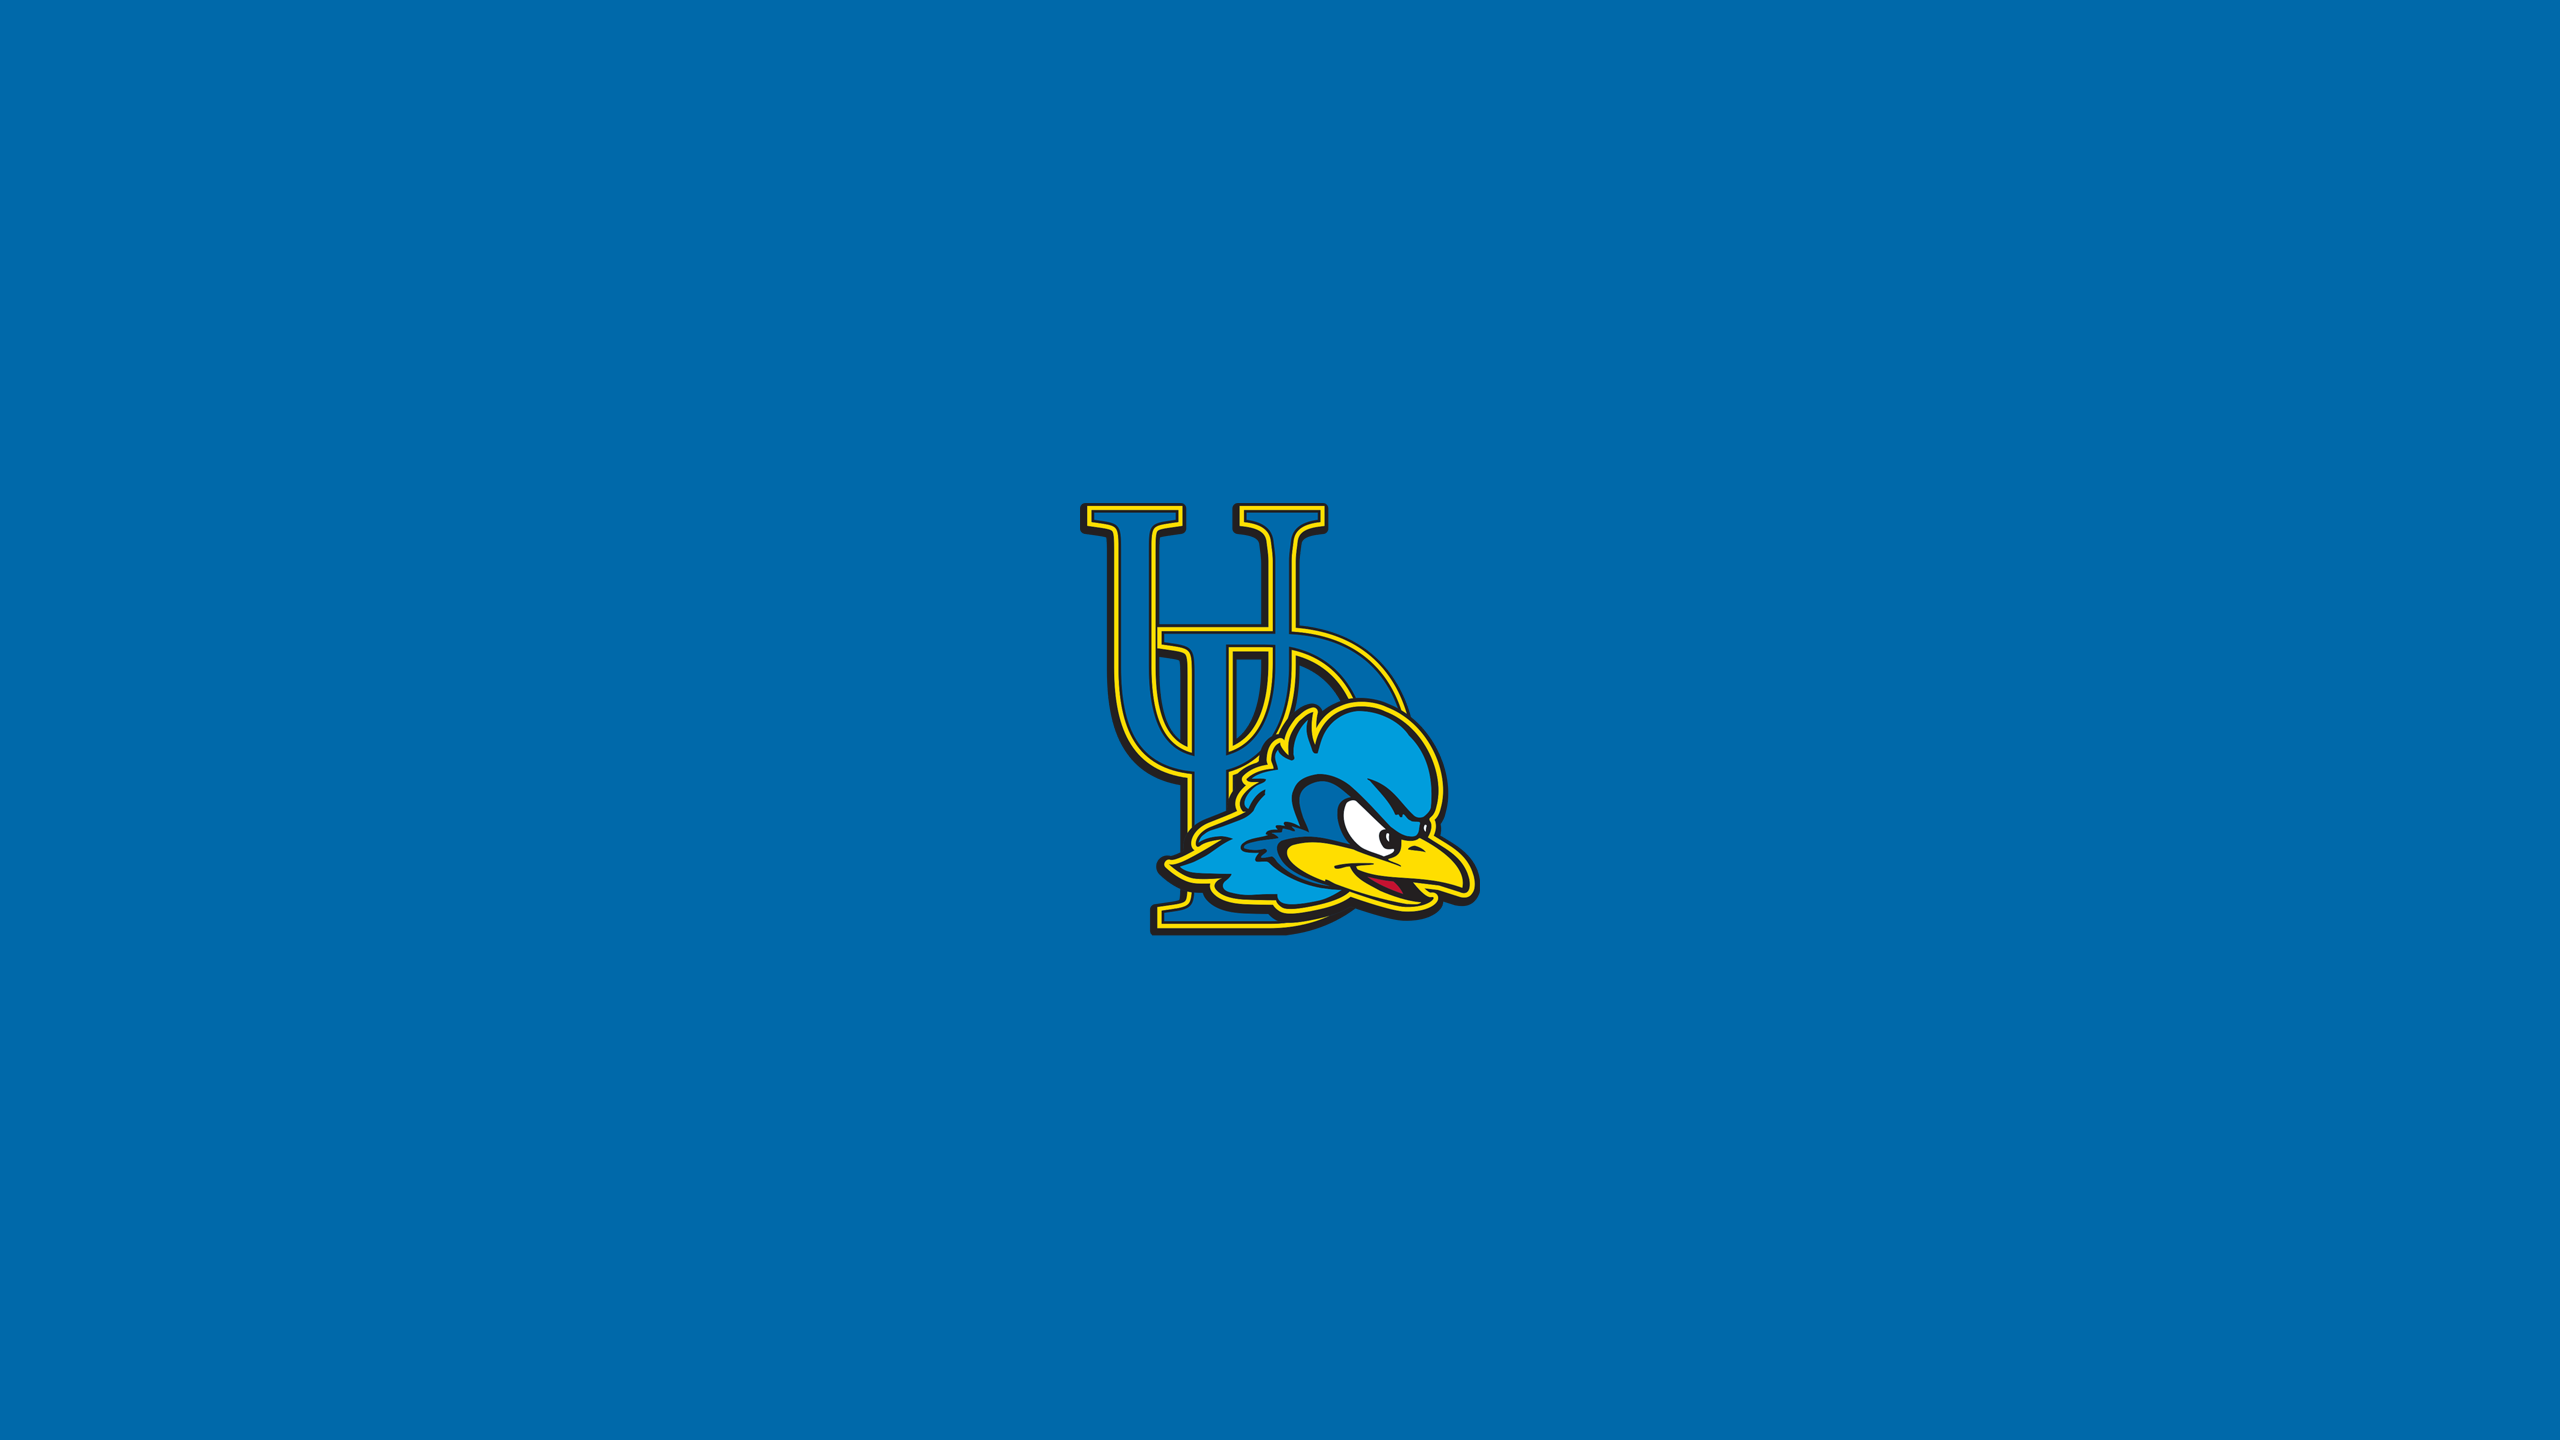 University of Delaware Fightin' Blue Hens